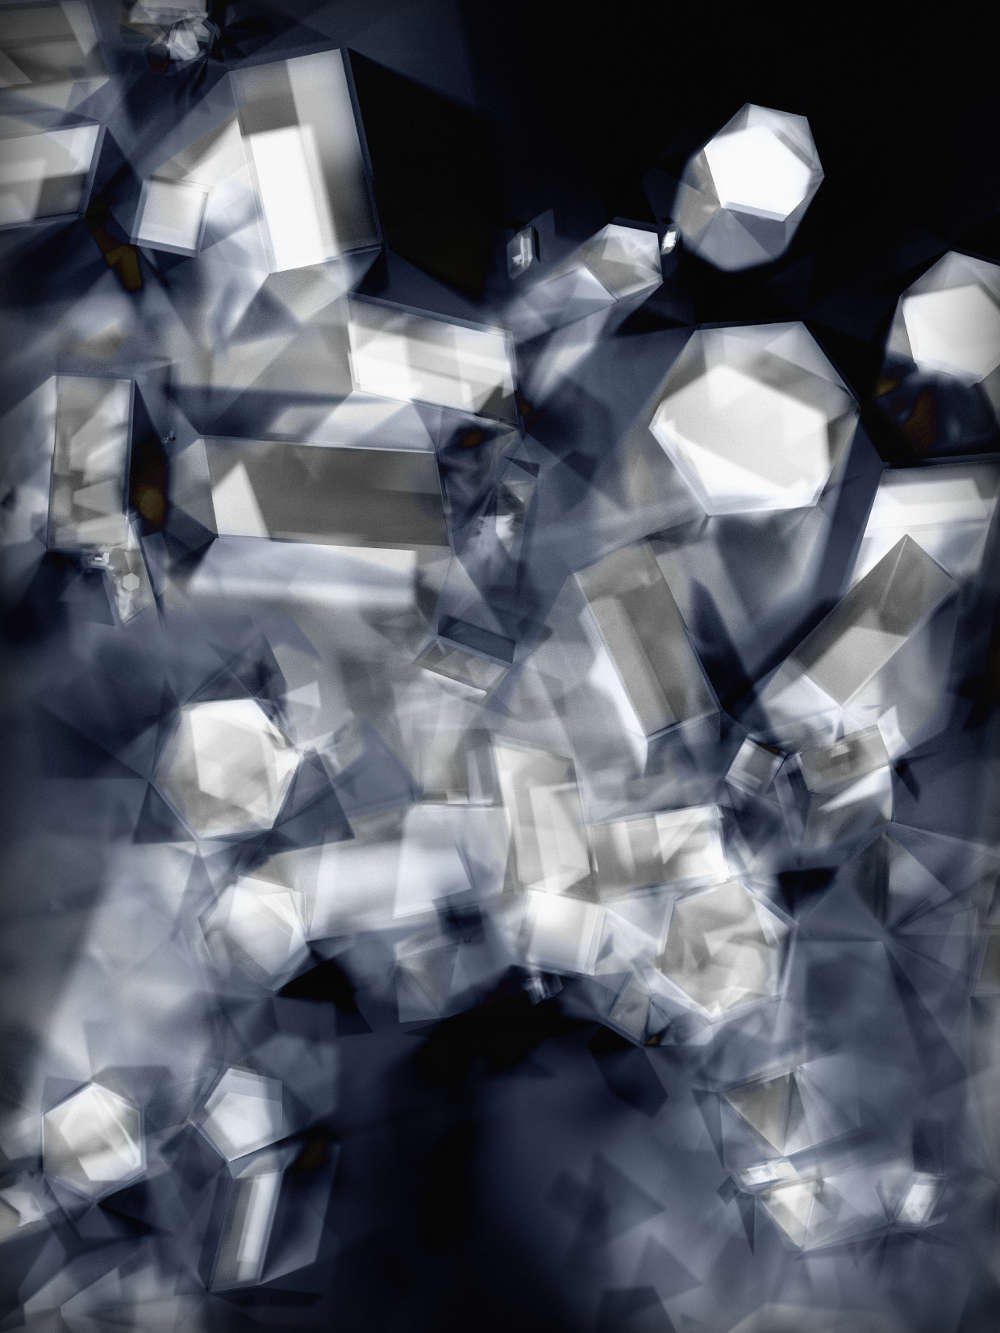 Thomas Ruff, phg.03_I, 2013. C-print. Framed: 240 x 185 cm Edition of 4 plus 1 AP (#2/4)